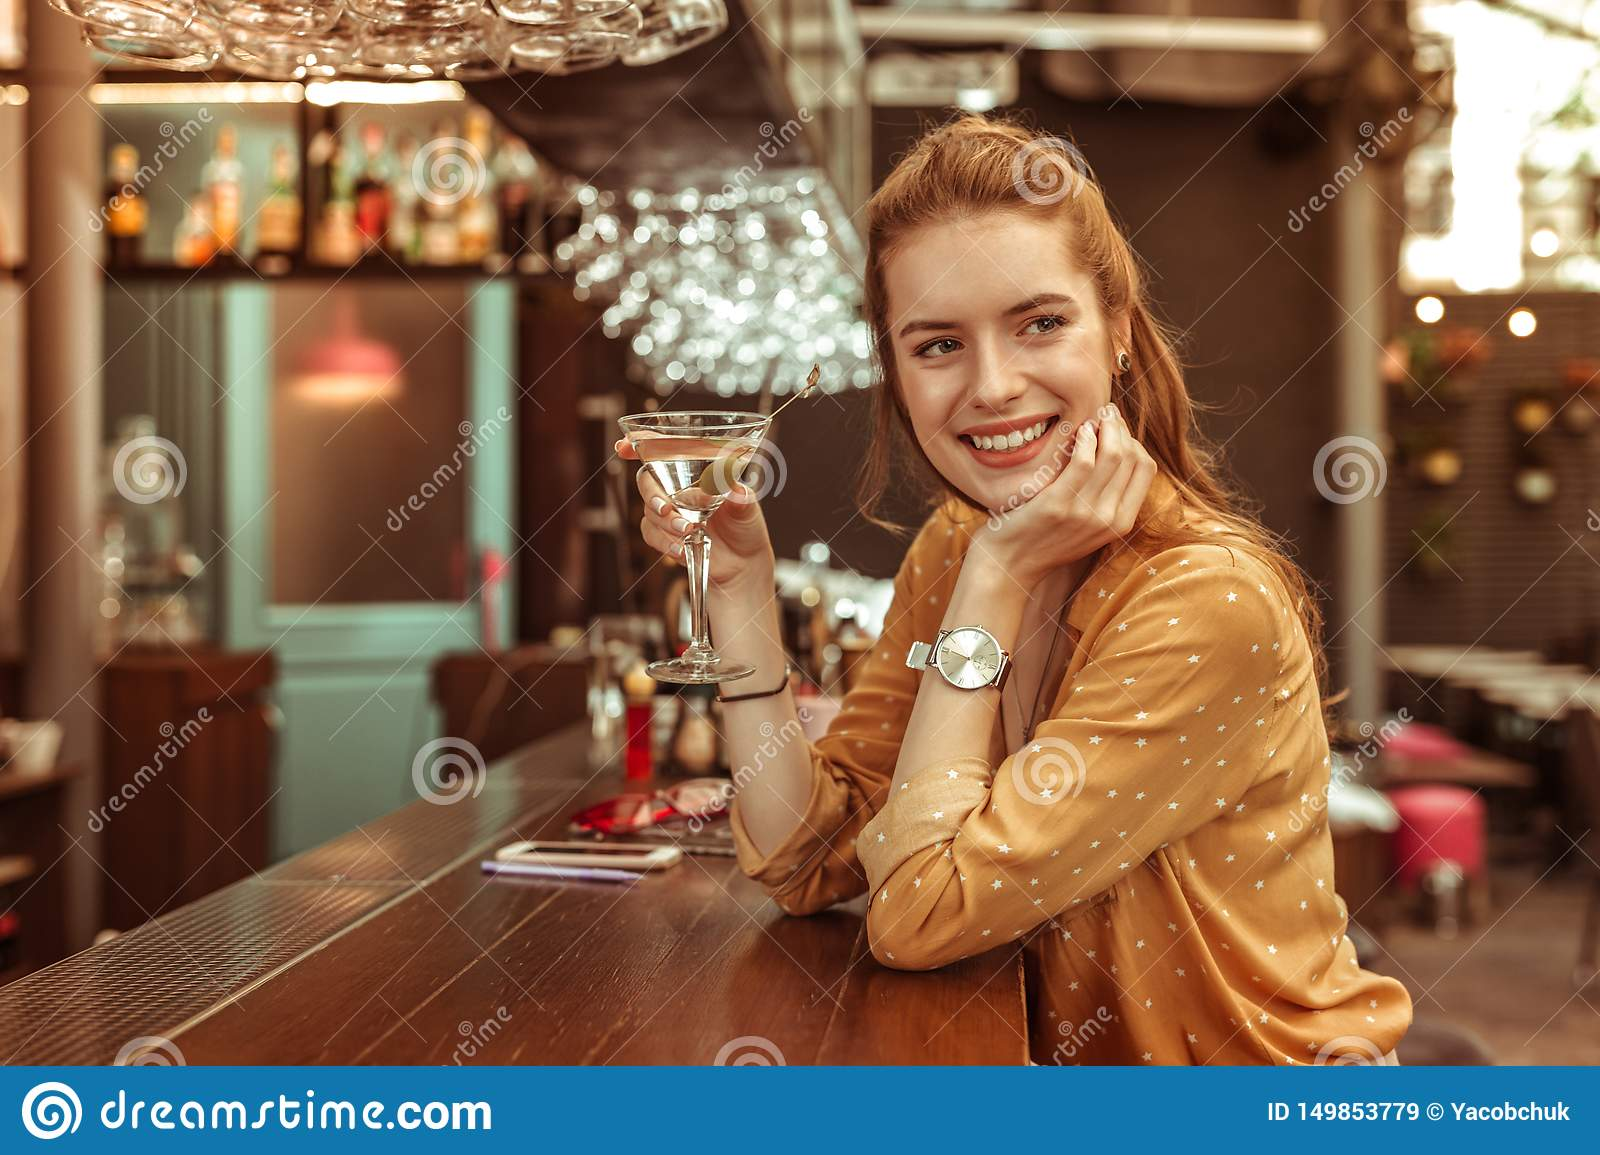 Smiling woman holding martini drink sitting at the bar counter